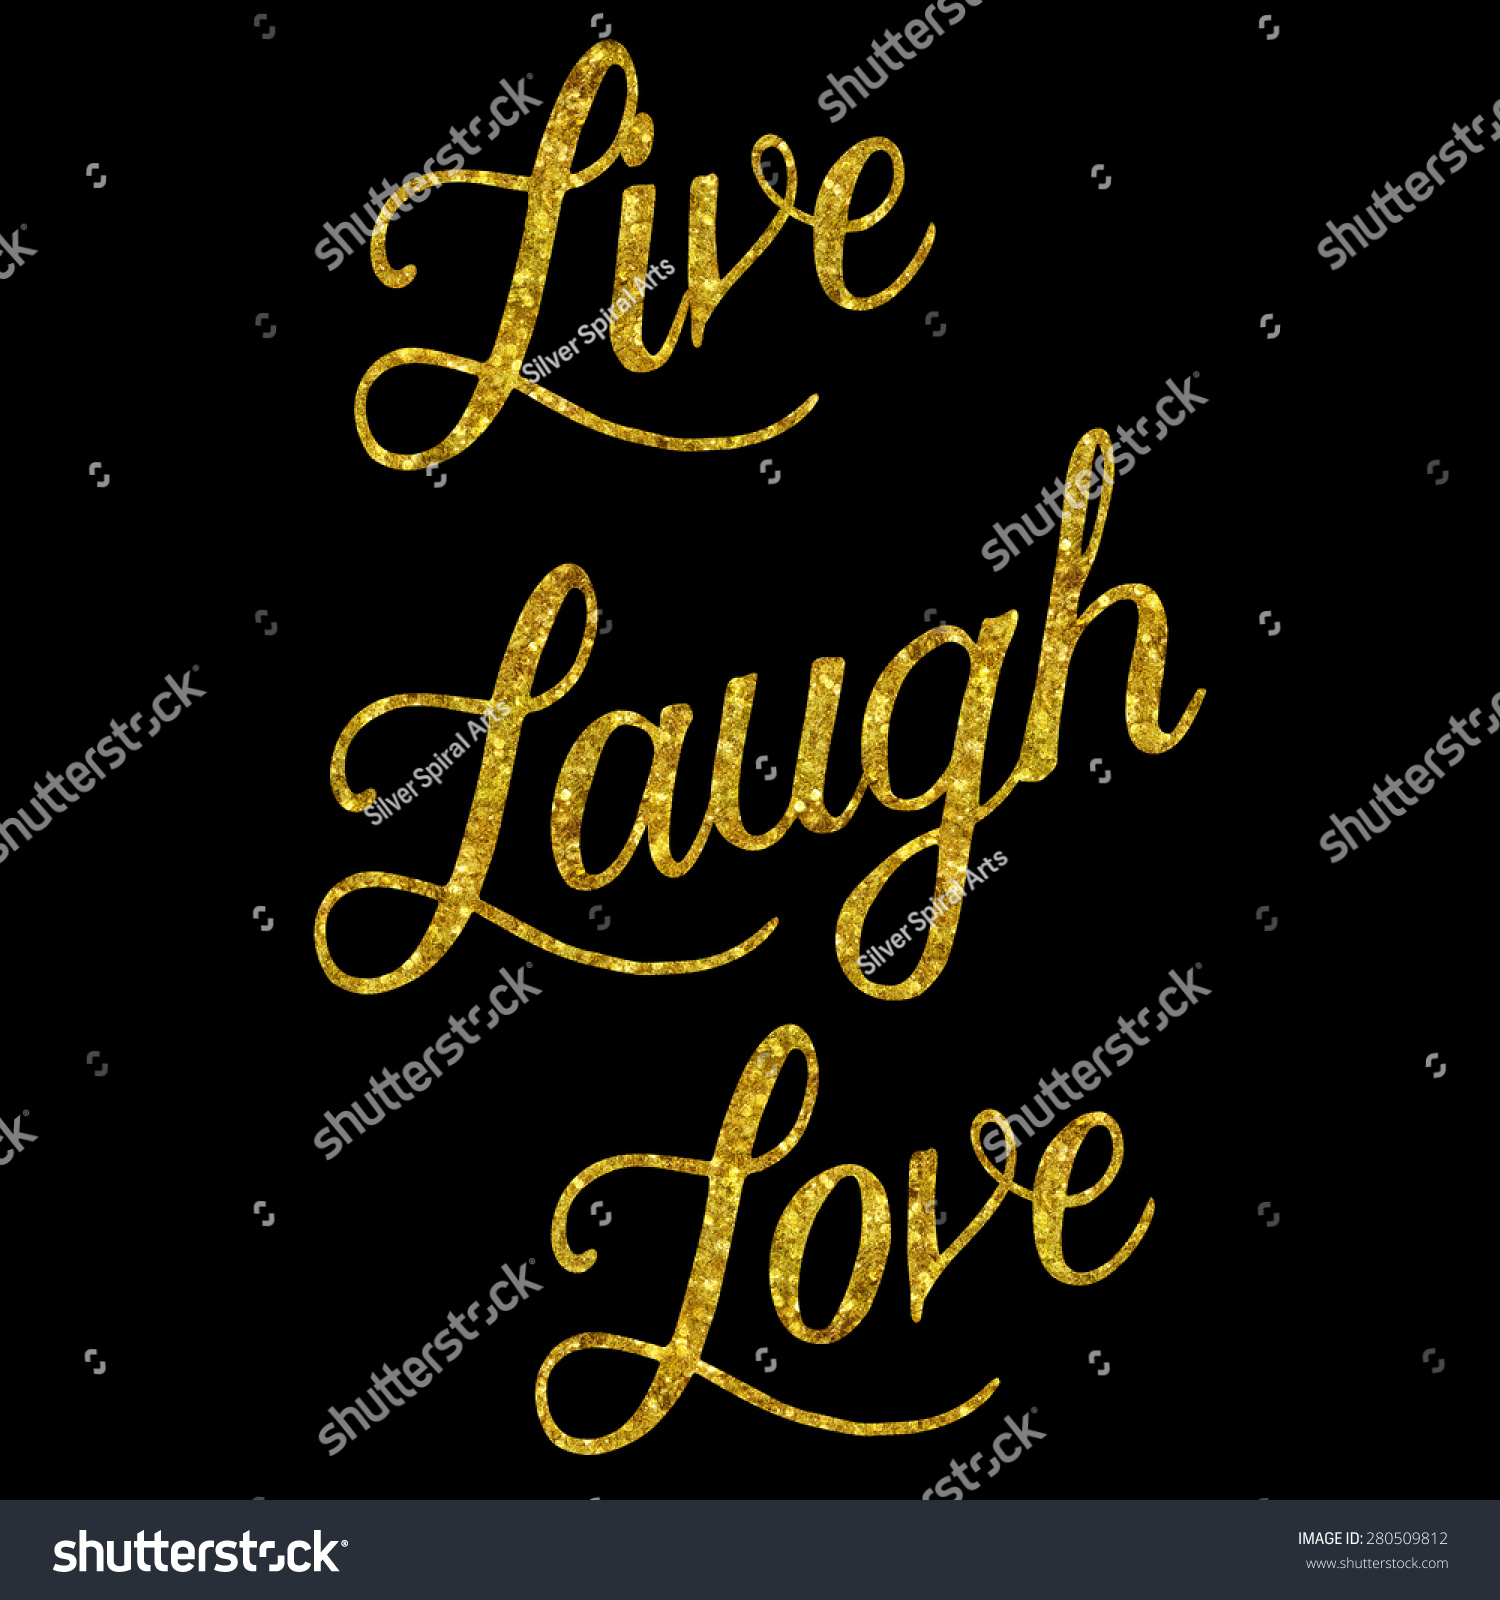 Live Gold Quotes Royaltyfree Glittery Gold Faux Foil Metallic… 280509812 Stock